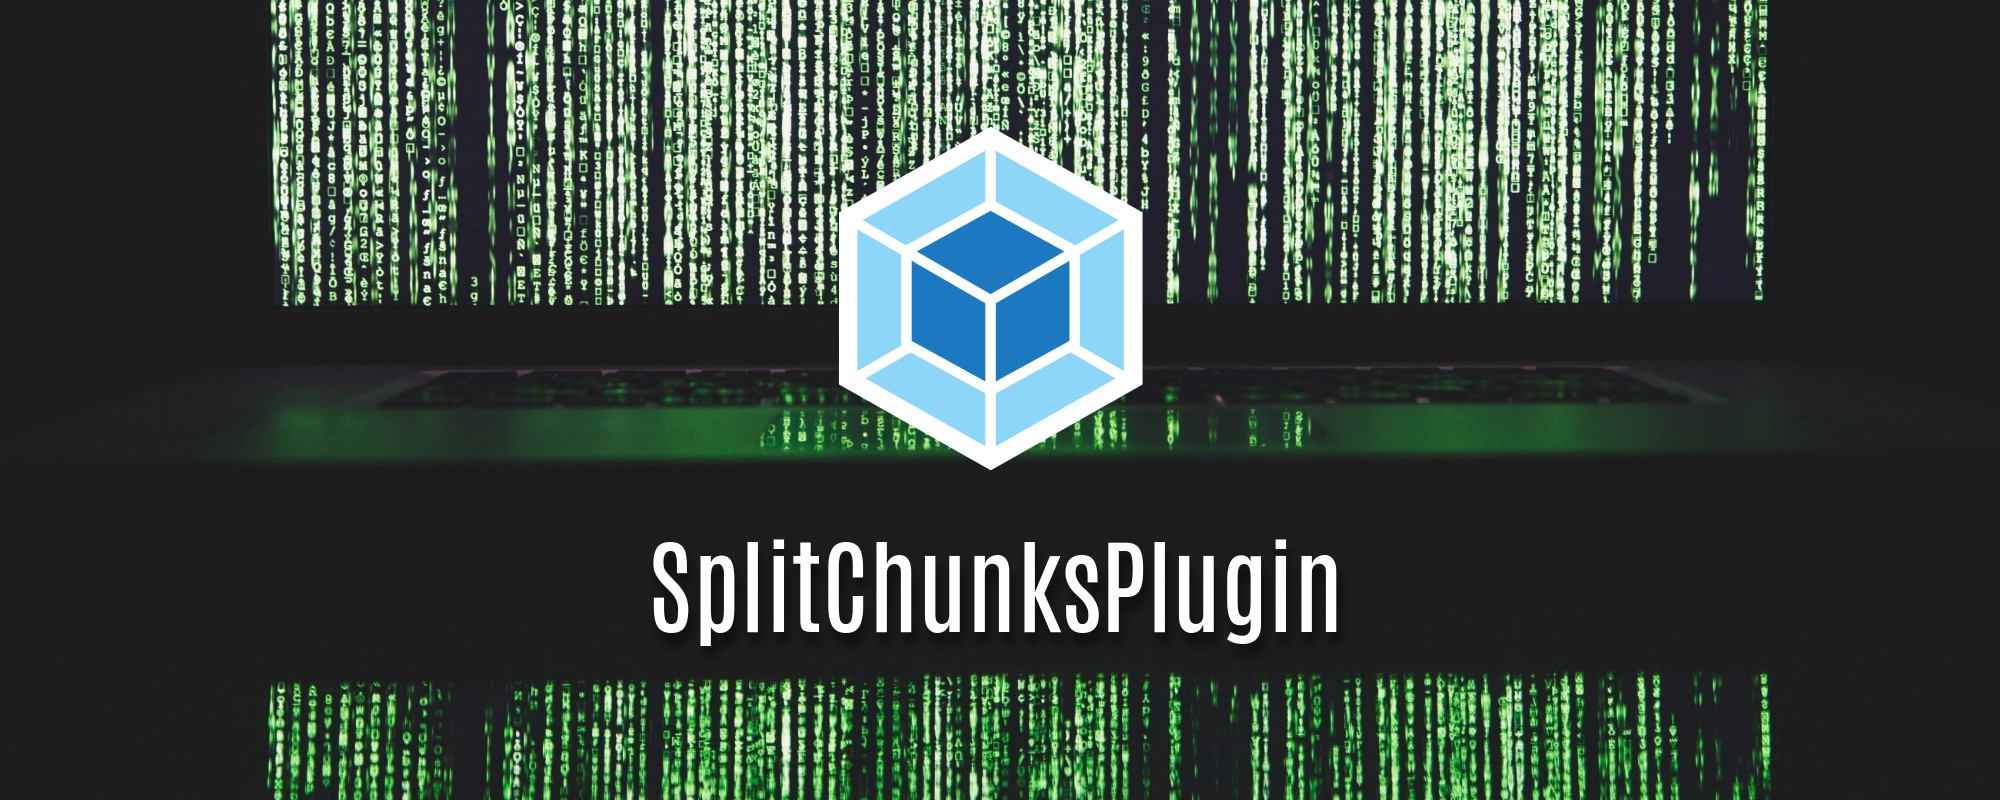 Webpack (v4) Code Splitting using SplitChunksPlugin